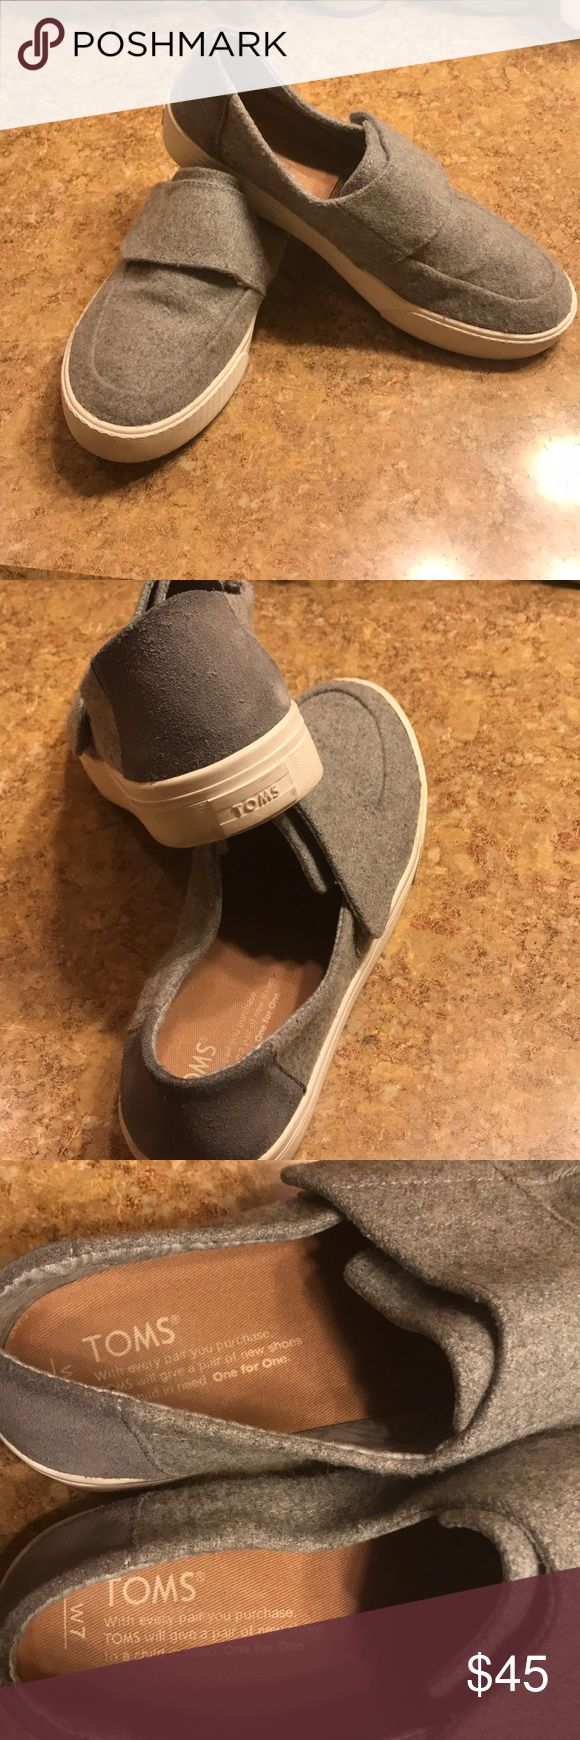 Toms Gray toms size 7  Wore once!  Comfy shoes! Toms Shoes Sneakers